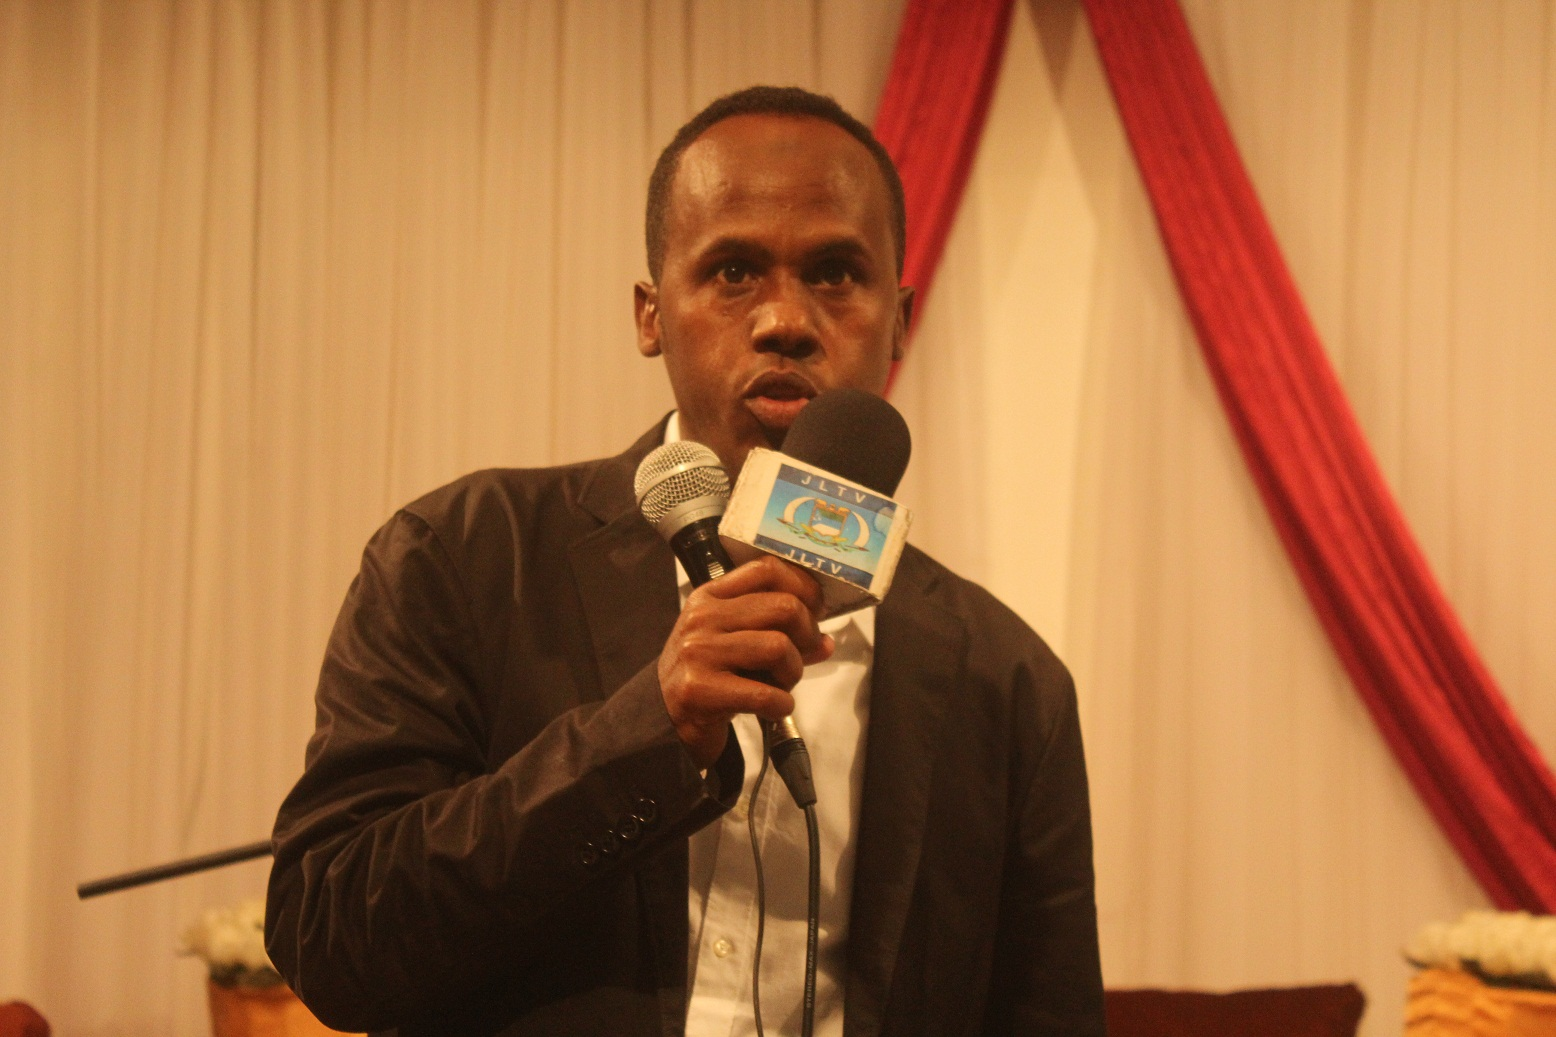 Abokar Mohamed Sheik, chairman of Banadir Sports Club